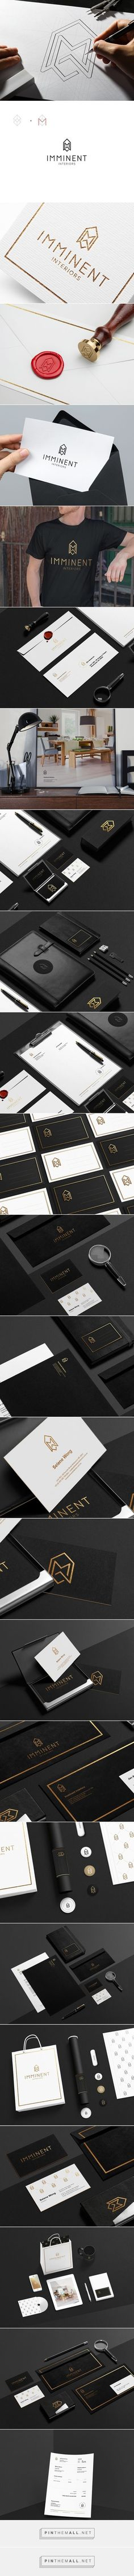 Imminent Interiors Architect Branding by Tomasz Mazurczak | Fivestar Branding – Design and Branding Agency & Inspiration Gallery